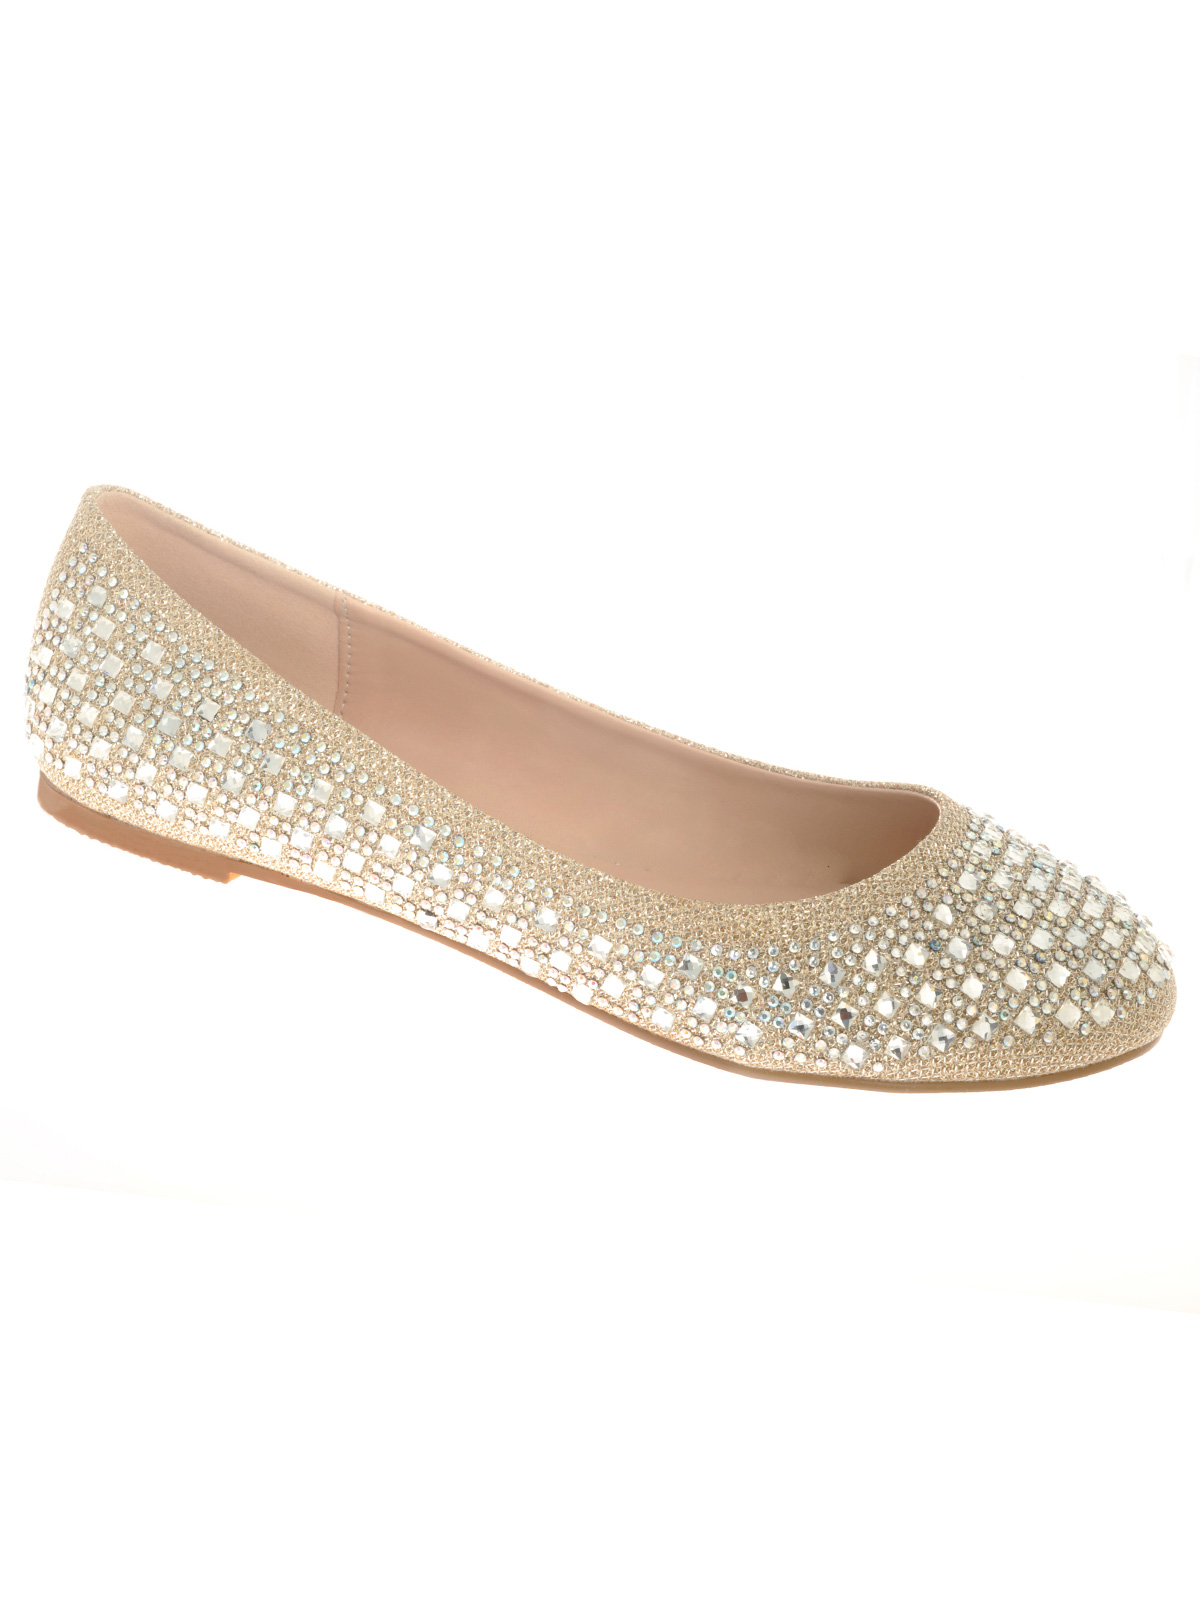 Dressy Flat Shoes For Prom